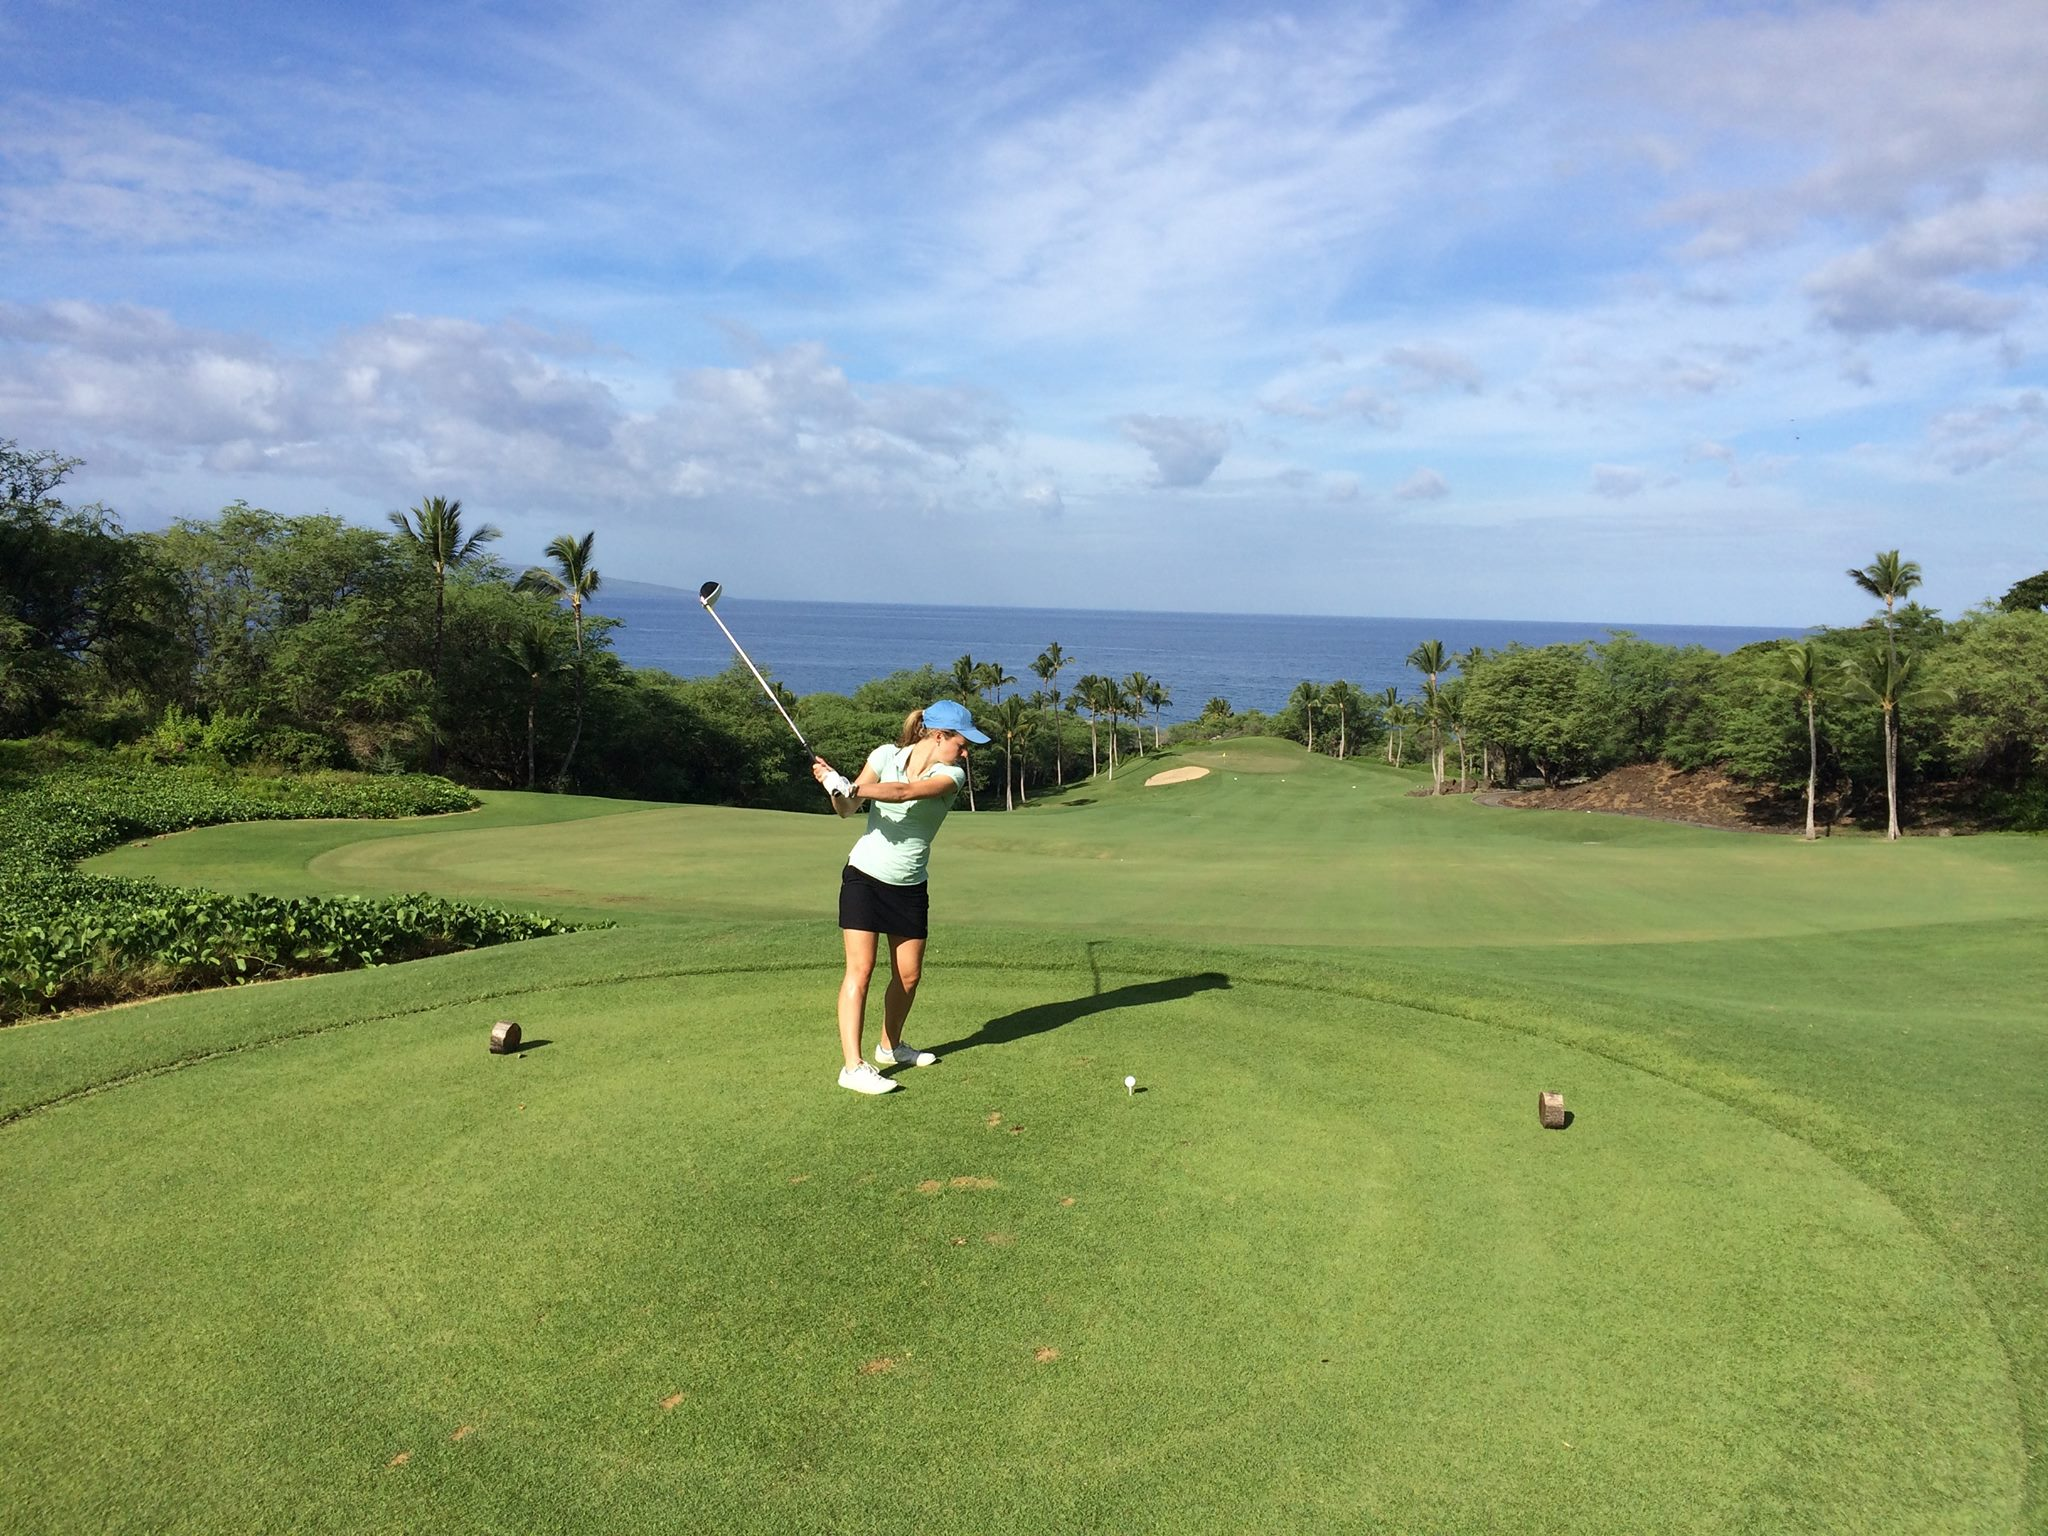 Women's Golf Outfit Guide - Get on the course with confidence and style.